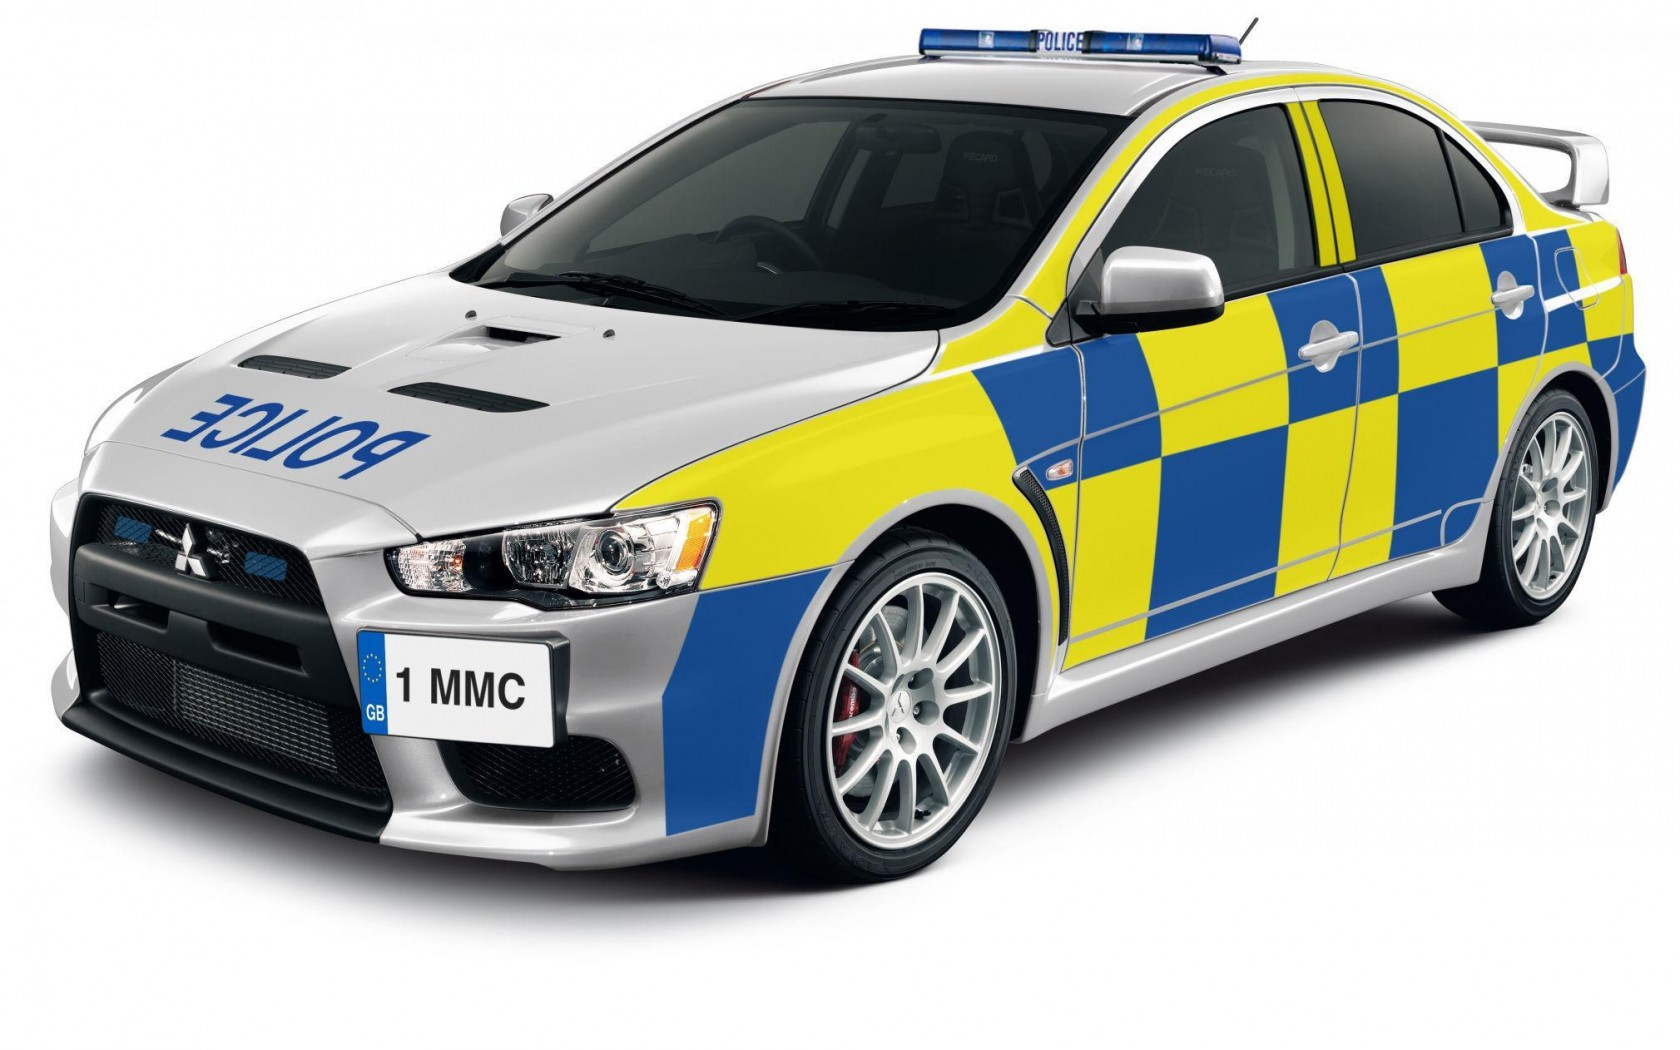 Police clipart uk royalty free British police car clipart - ClipartFest royalty free